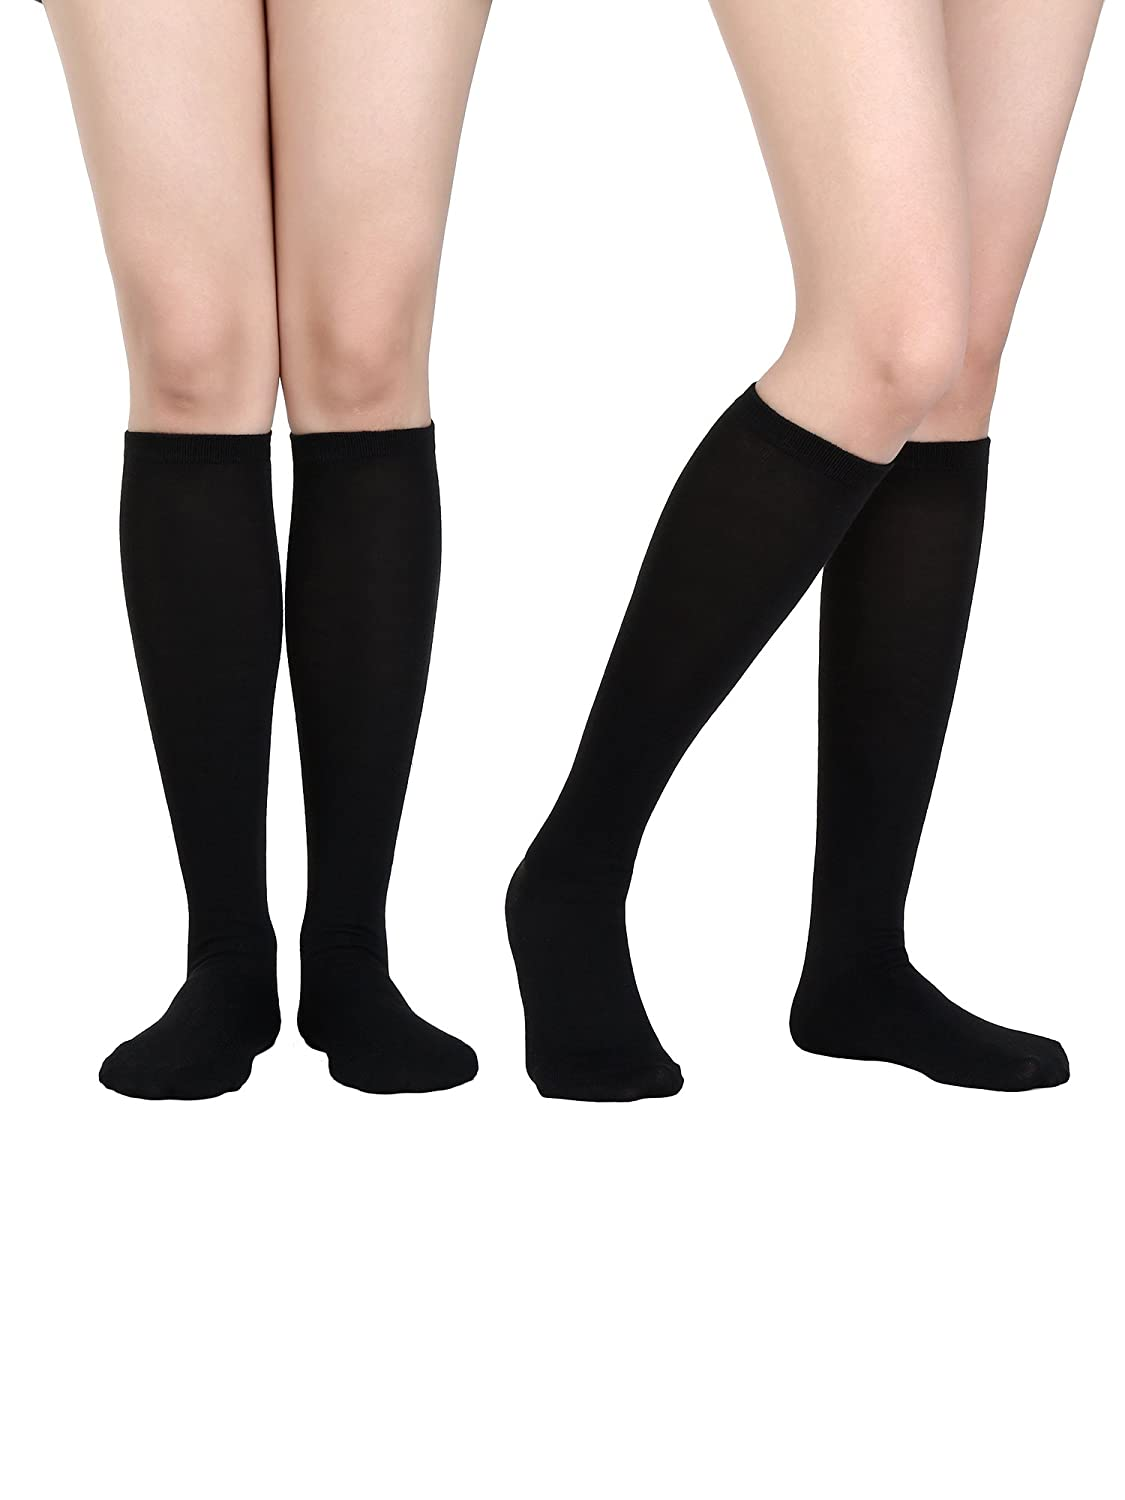 Satinior Women Knee High Socks Soft Boot Socks Cosplay Socks for Party, Halloween, School, One Size One Size (Black 1 Pack)